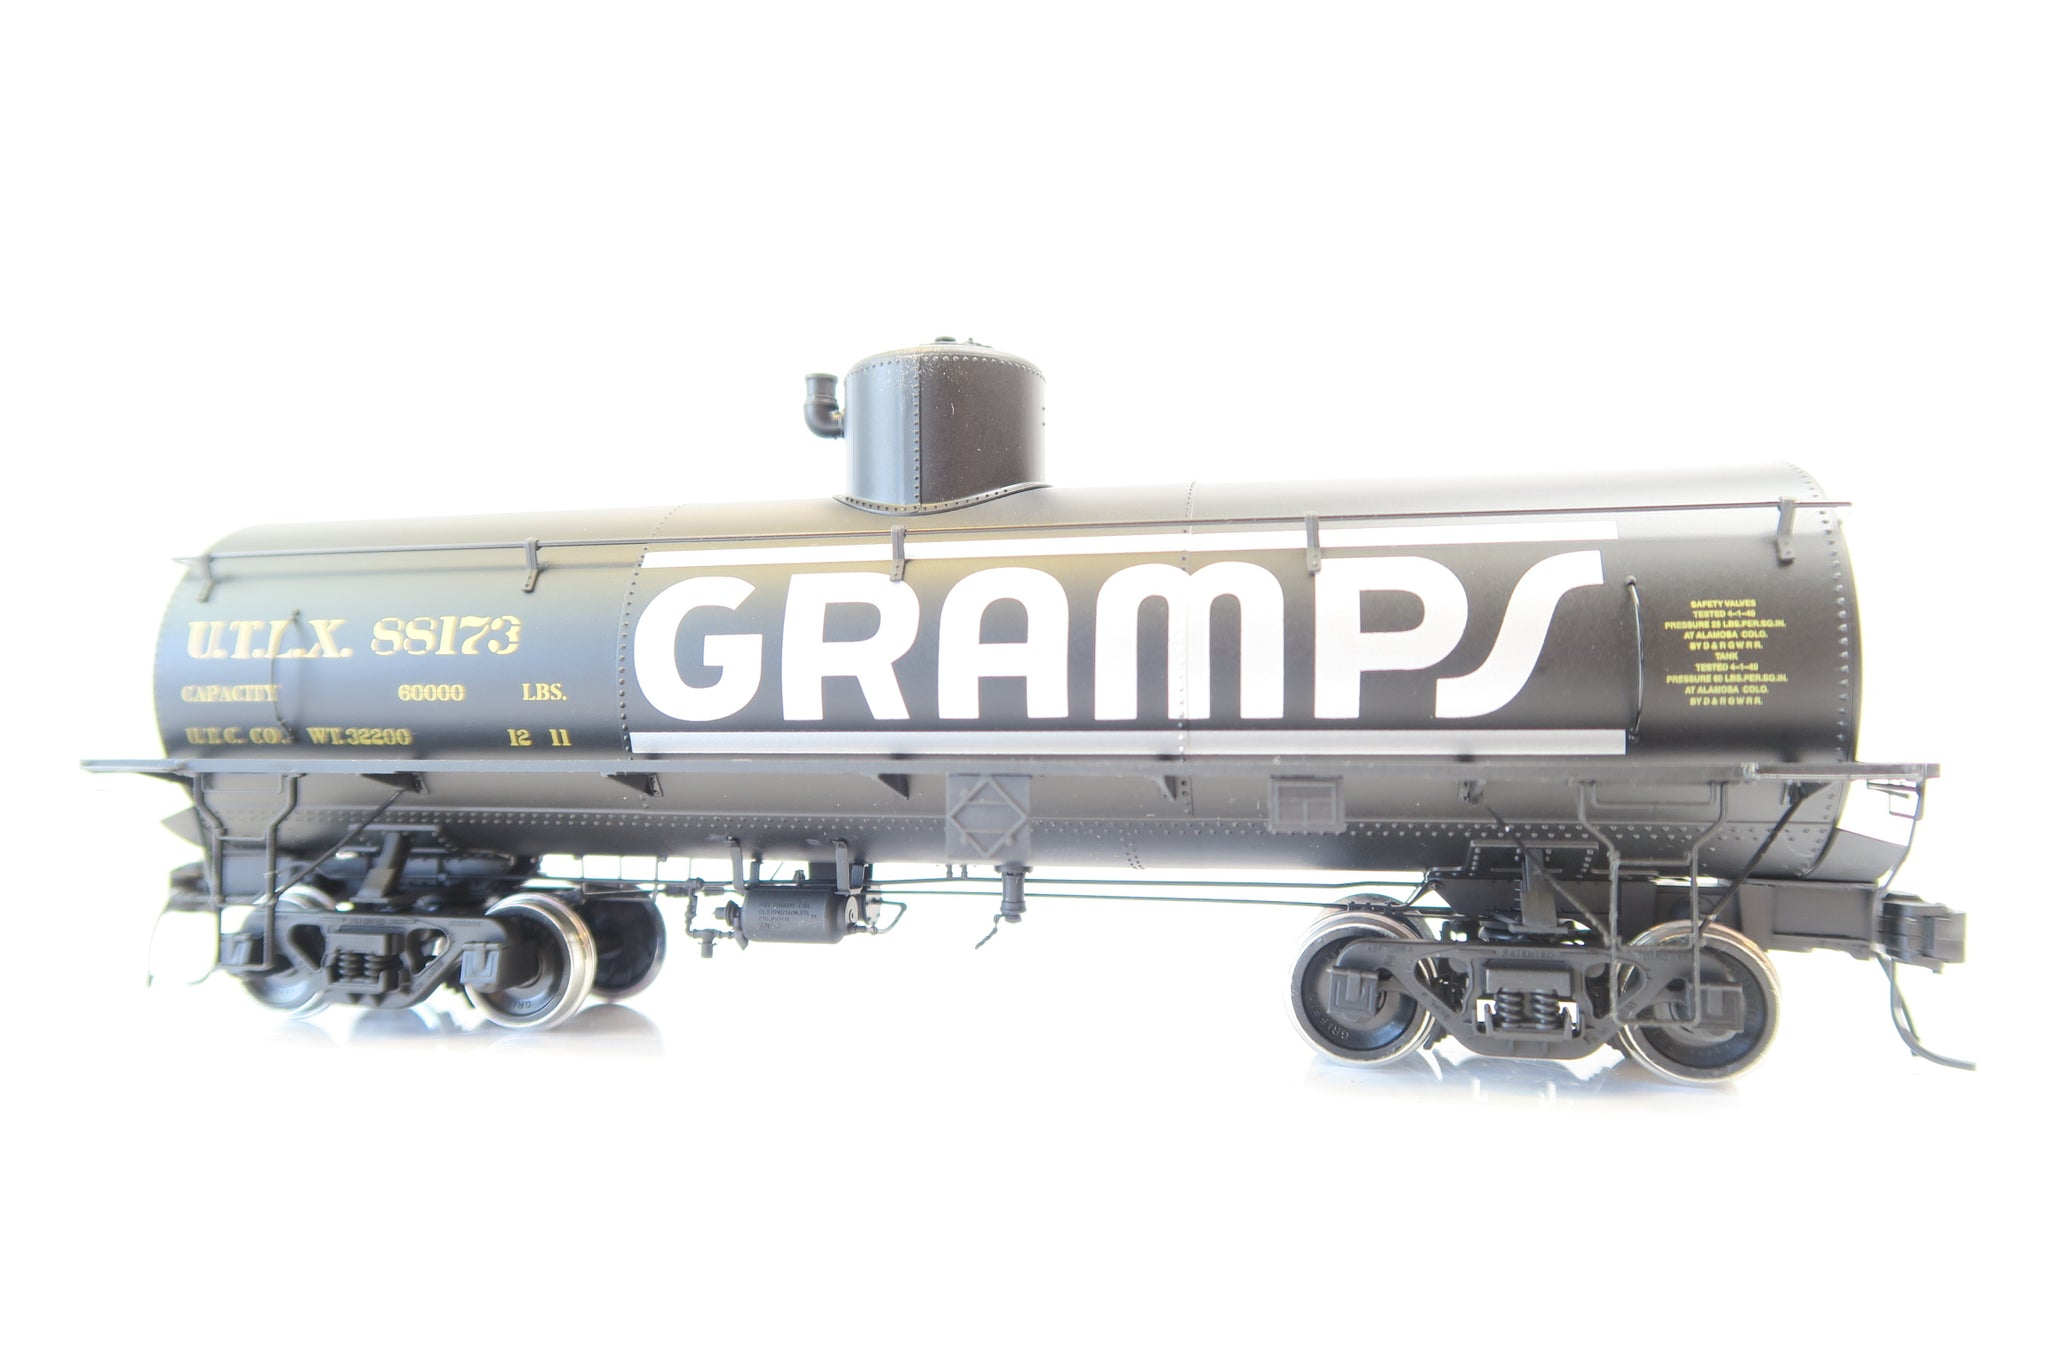 San Juan Car Co. On3 Scale Gramos Tank Car '88173'